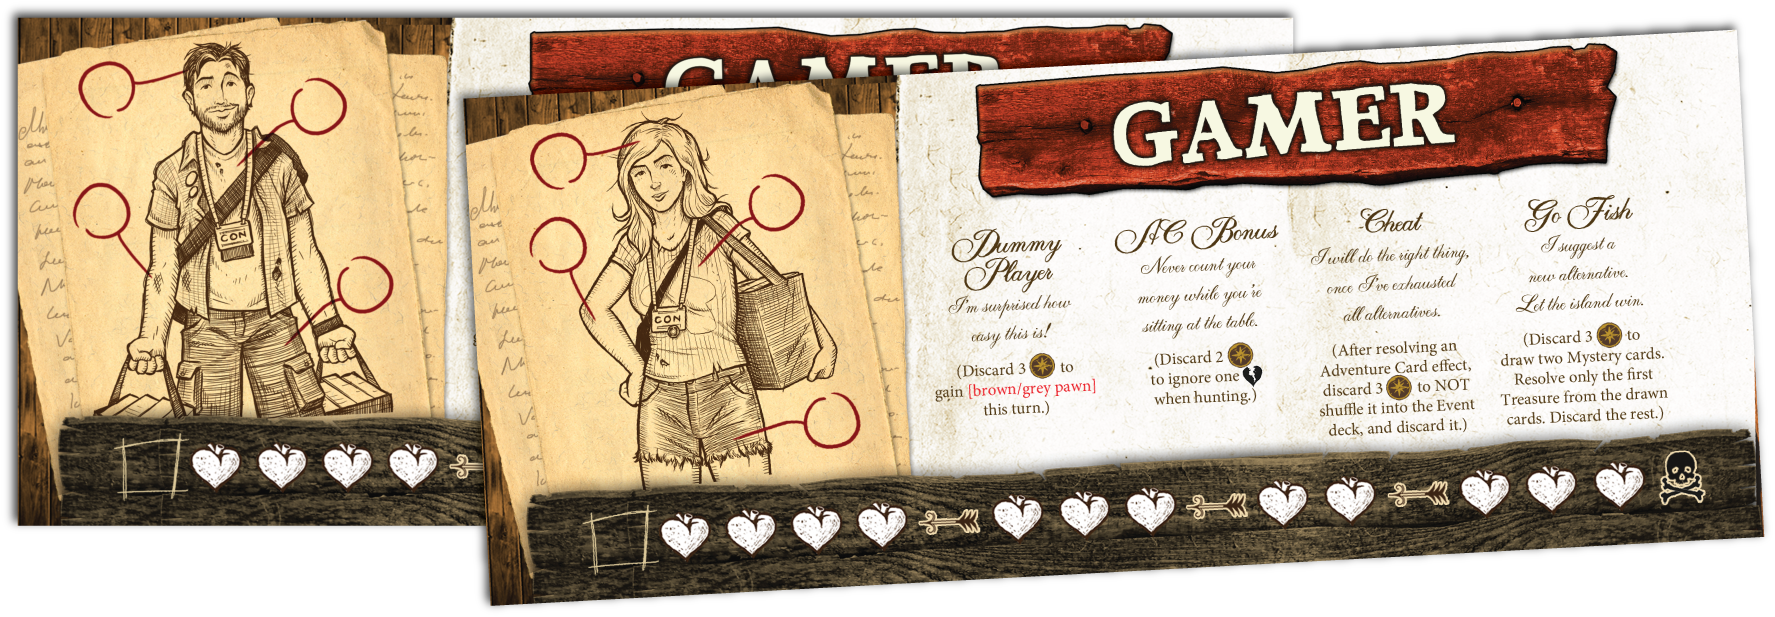 Robinson Crusoe: Adventures on the Cursed Island – Gamer Character